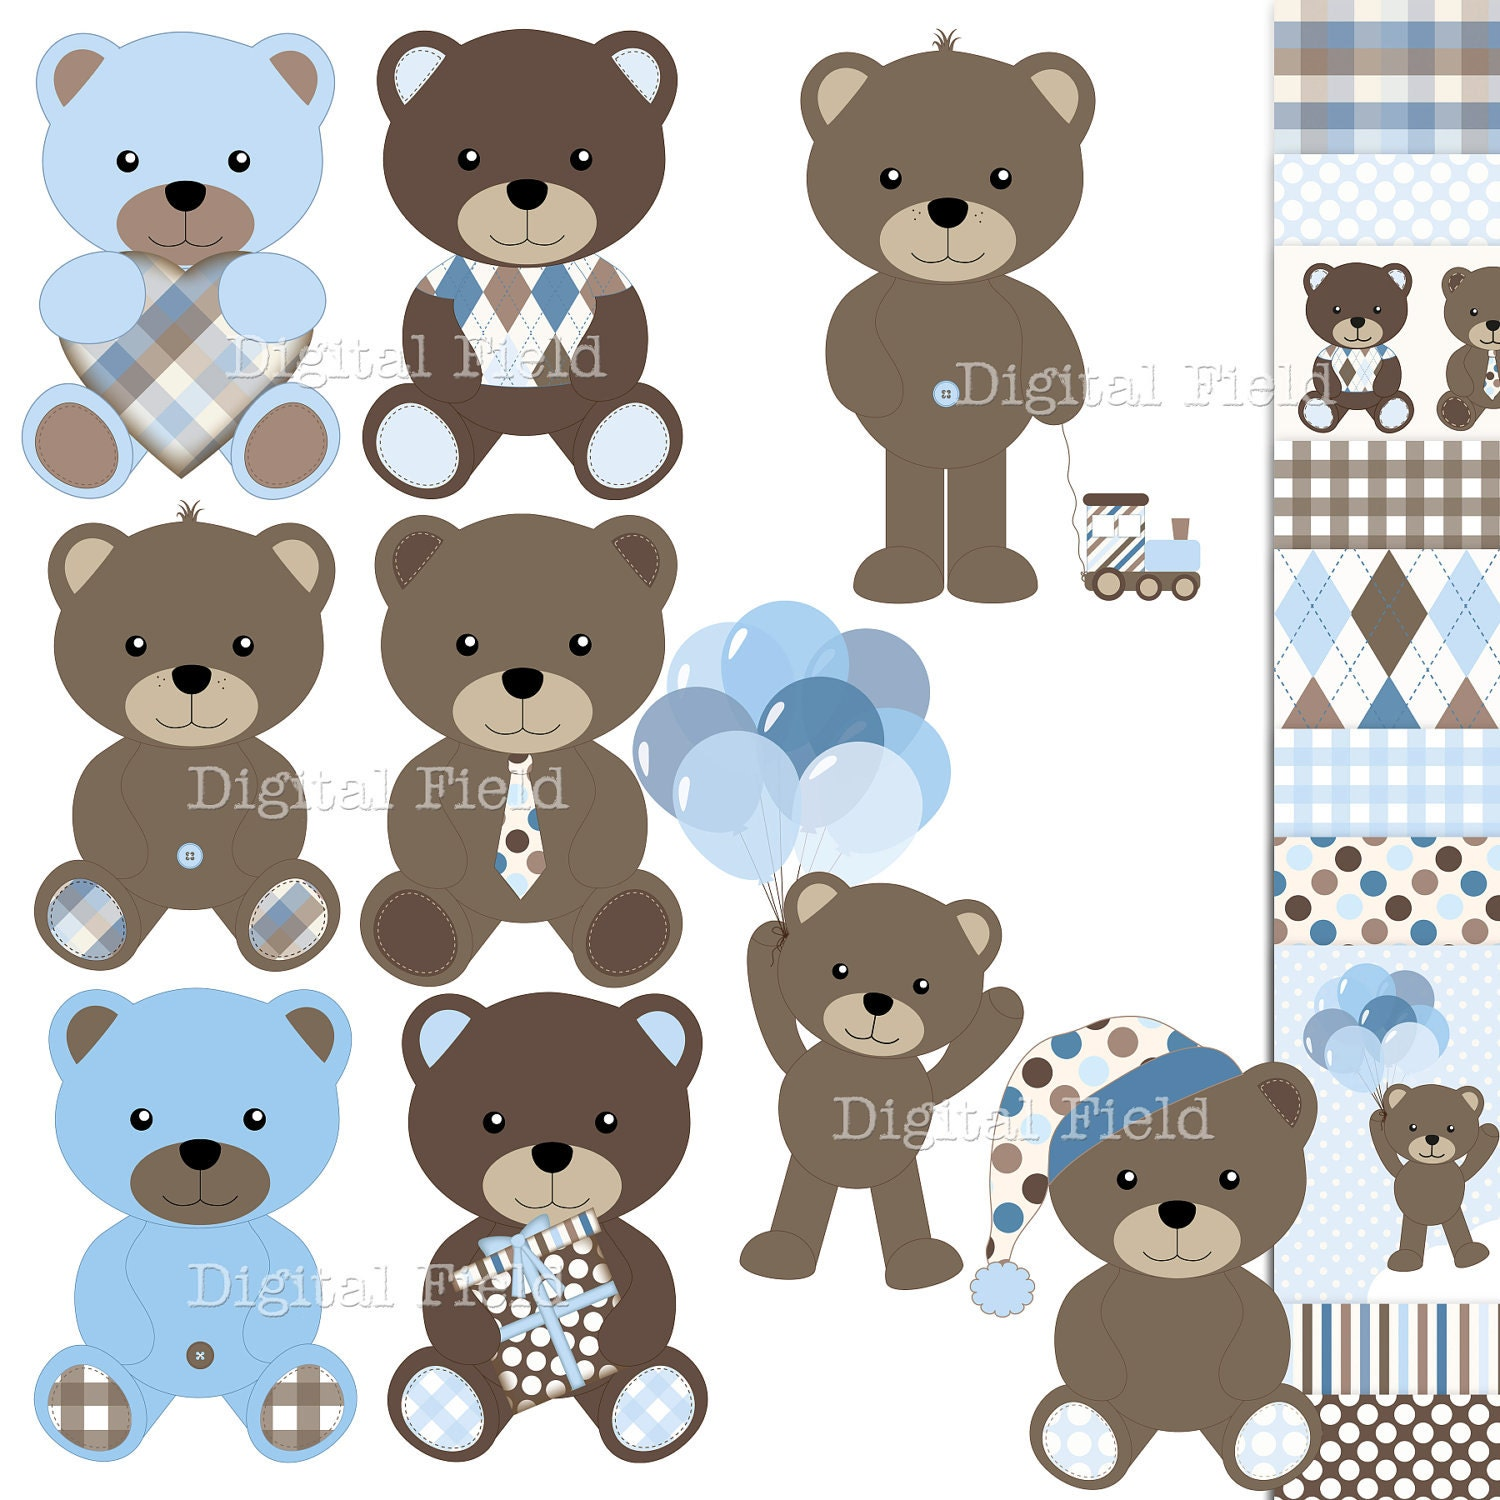 Baby boy teddy bear clip art - photo#5